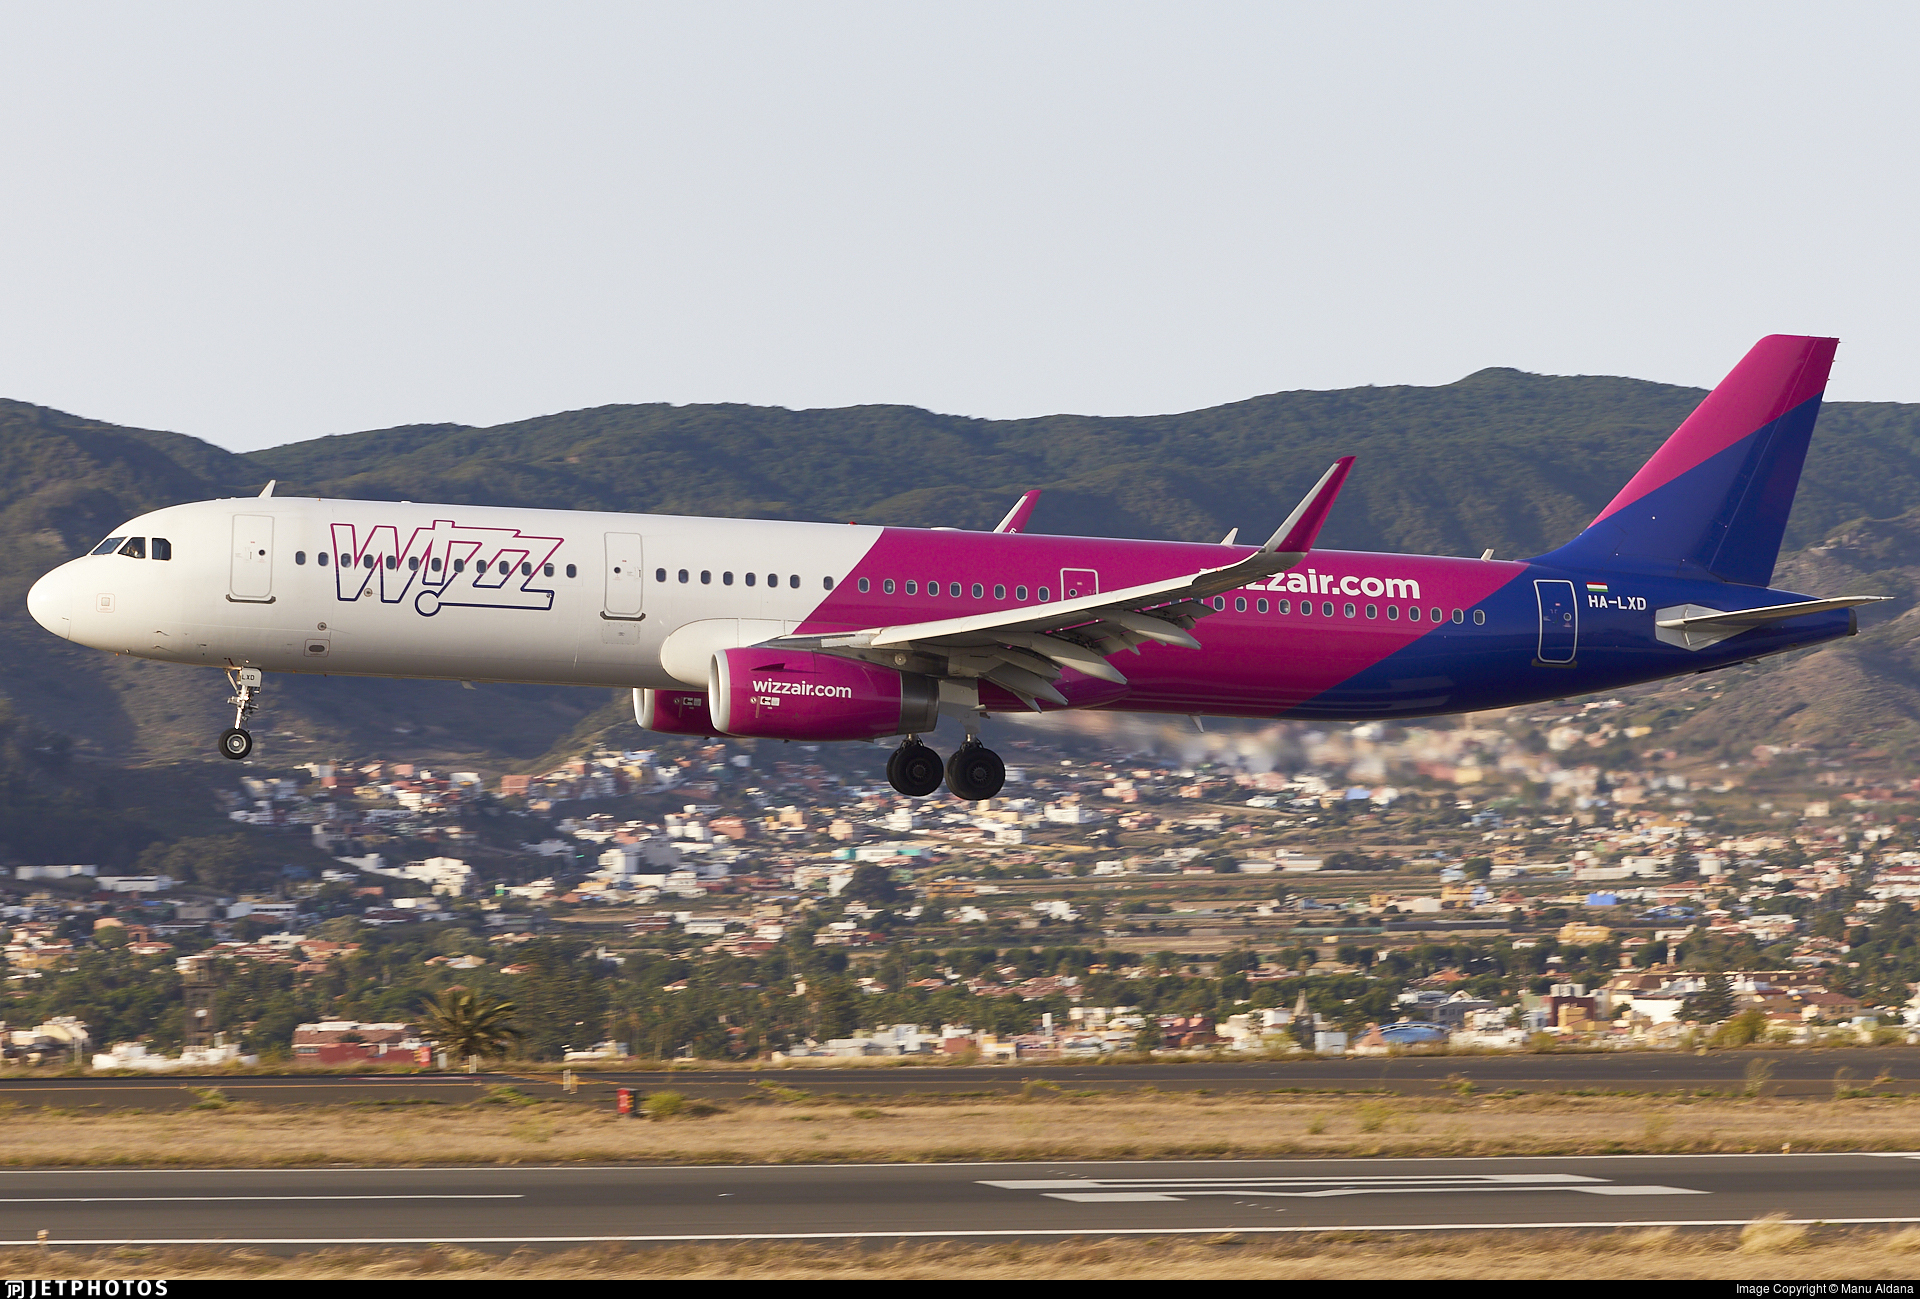 HA-LXD - Airbus A321-231 - Wizz Air